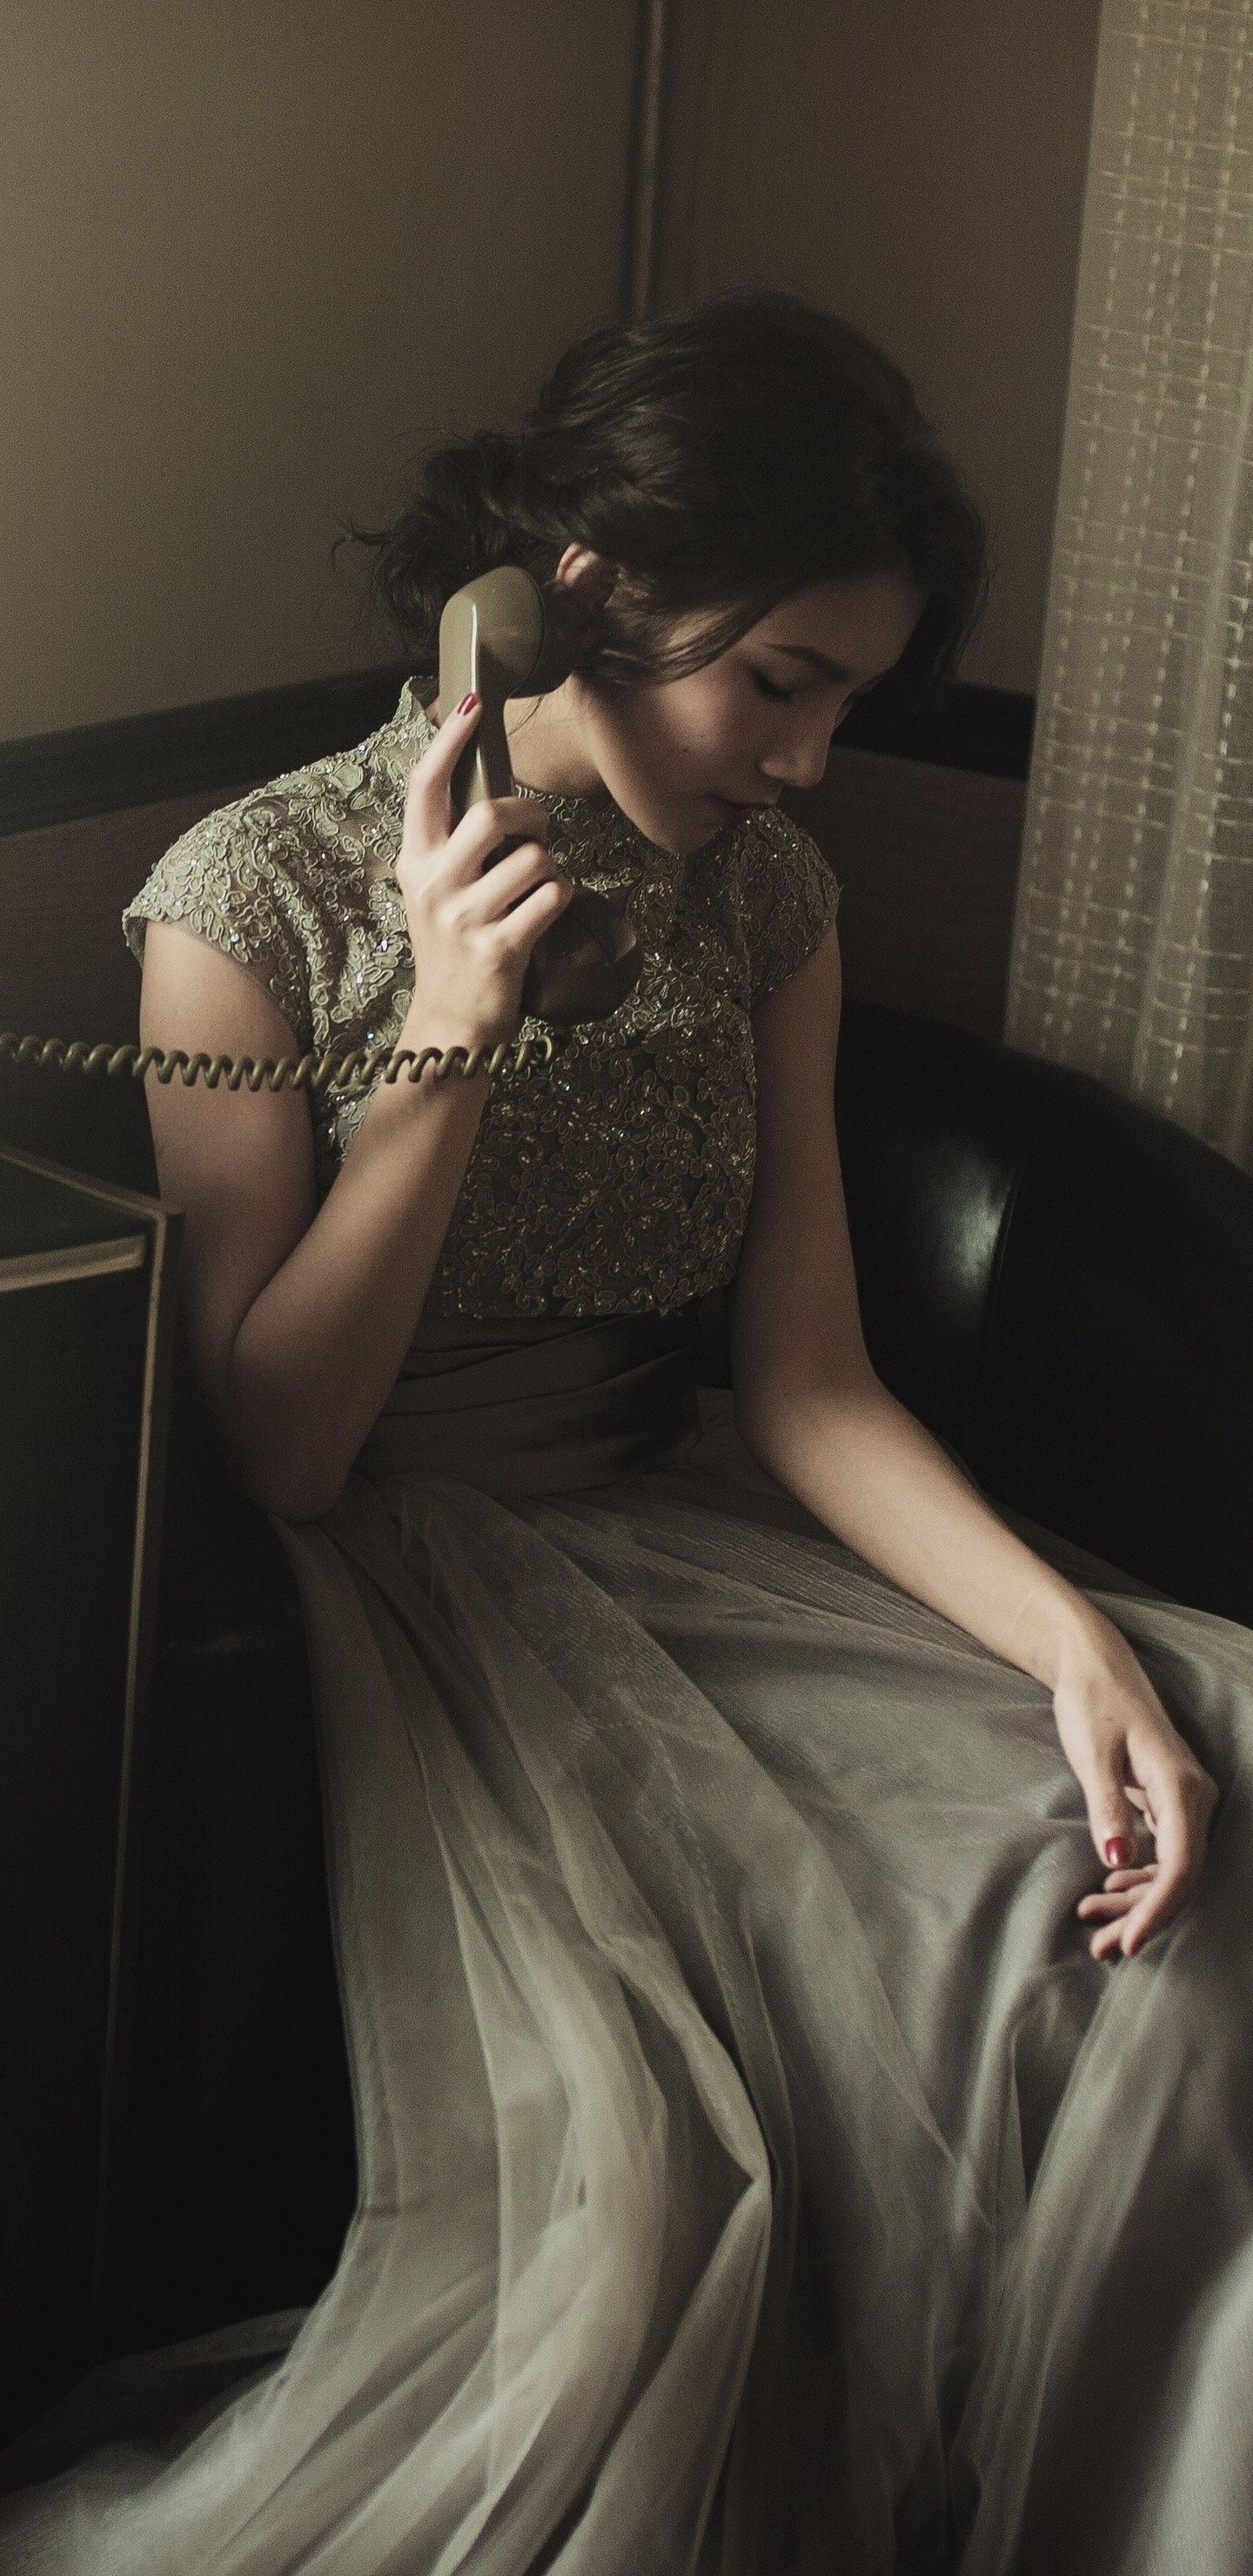 woman-talking-on-wire-telephone-na.jpg